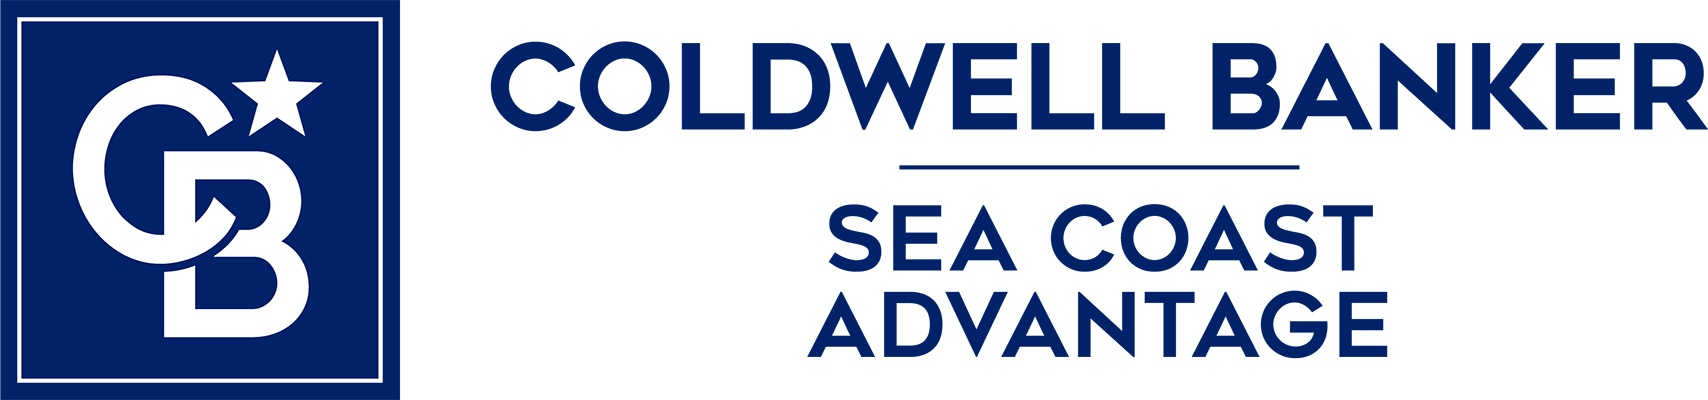 Patrick Kelly - Coldwell Banker Sea Coast Advantage Realty